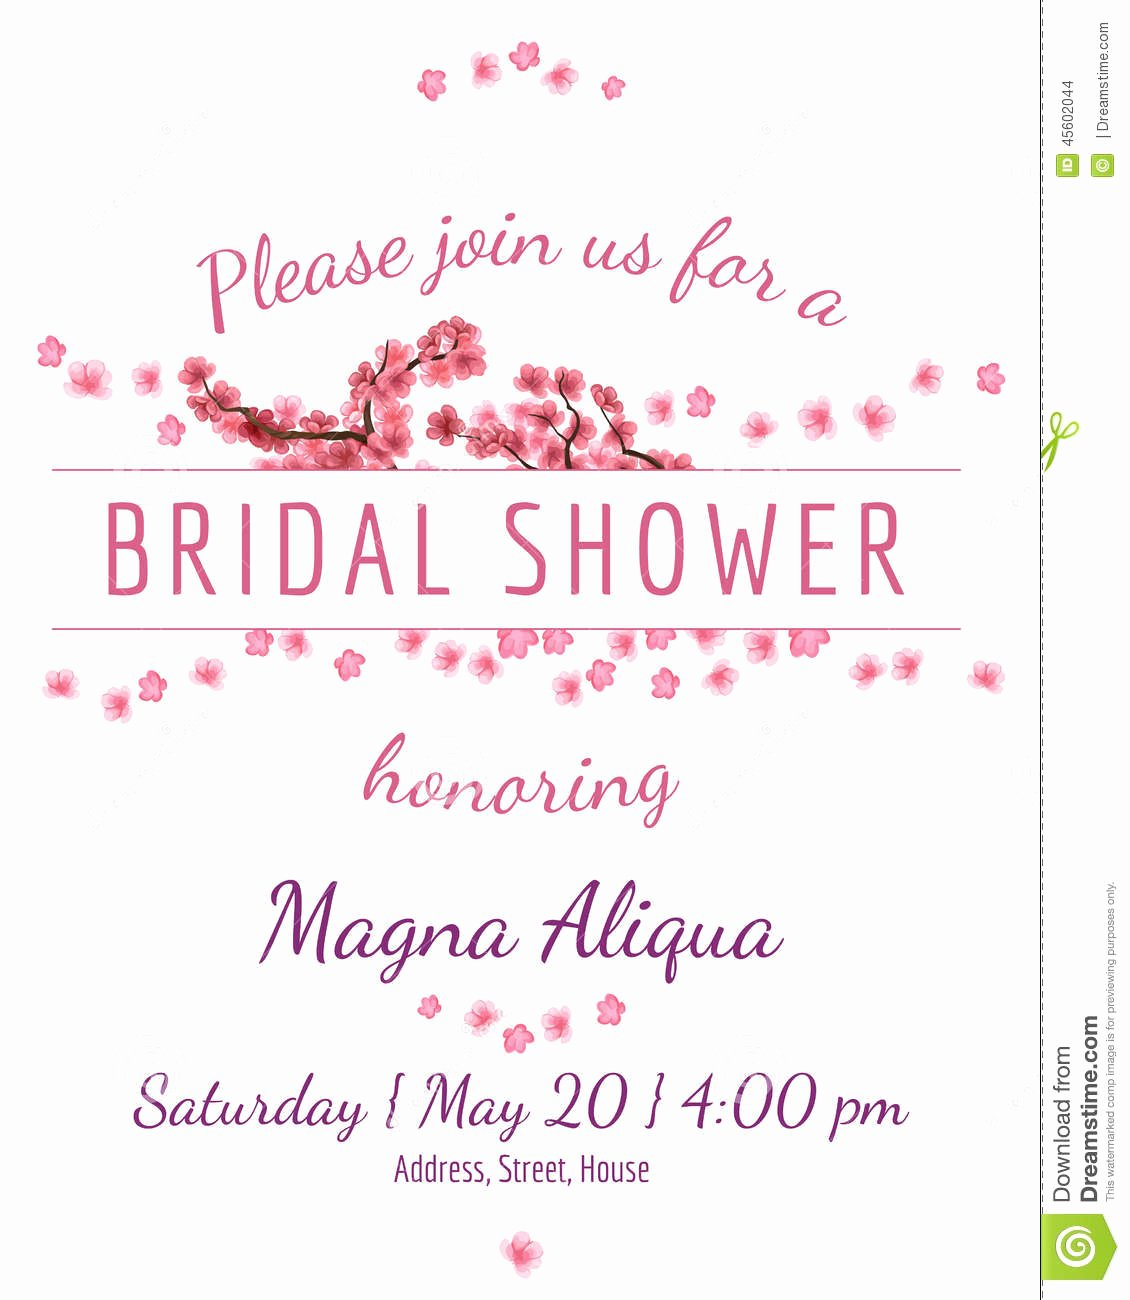 Bridal Shower Card Template Lovely Invitation Bridal Shower Card with Sakura Vector Stock